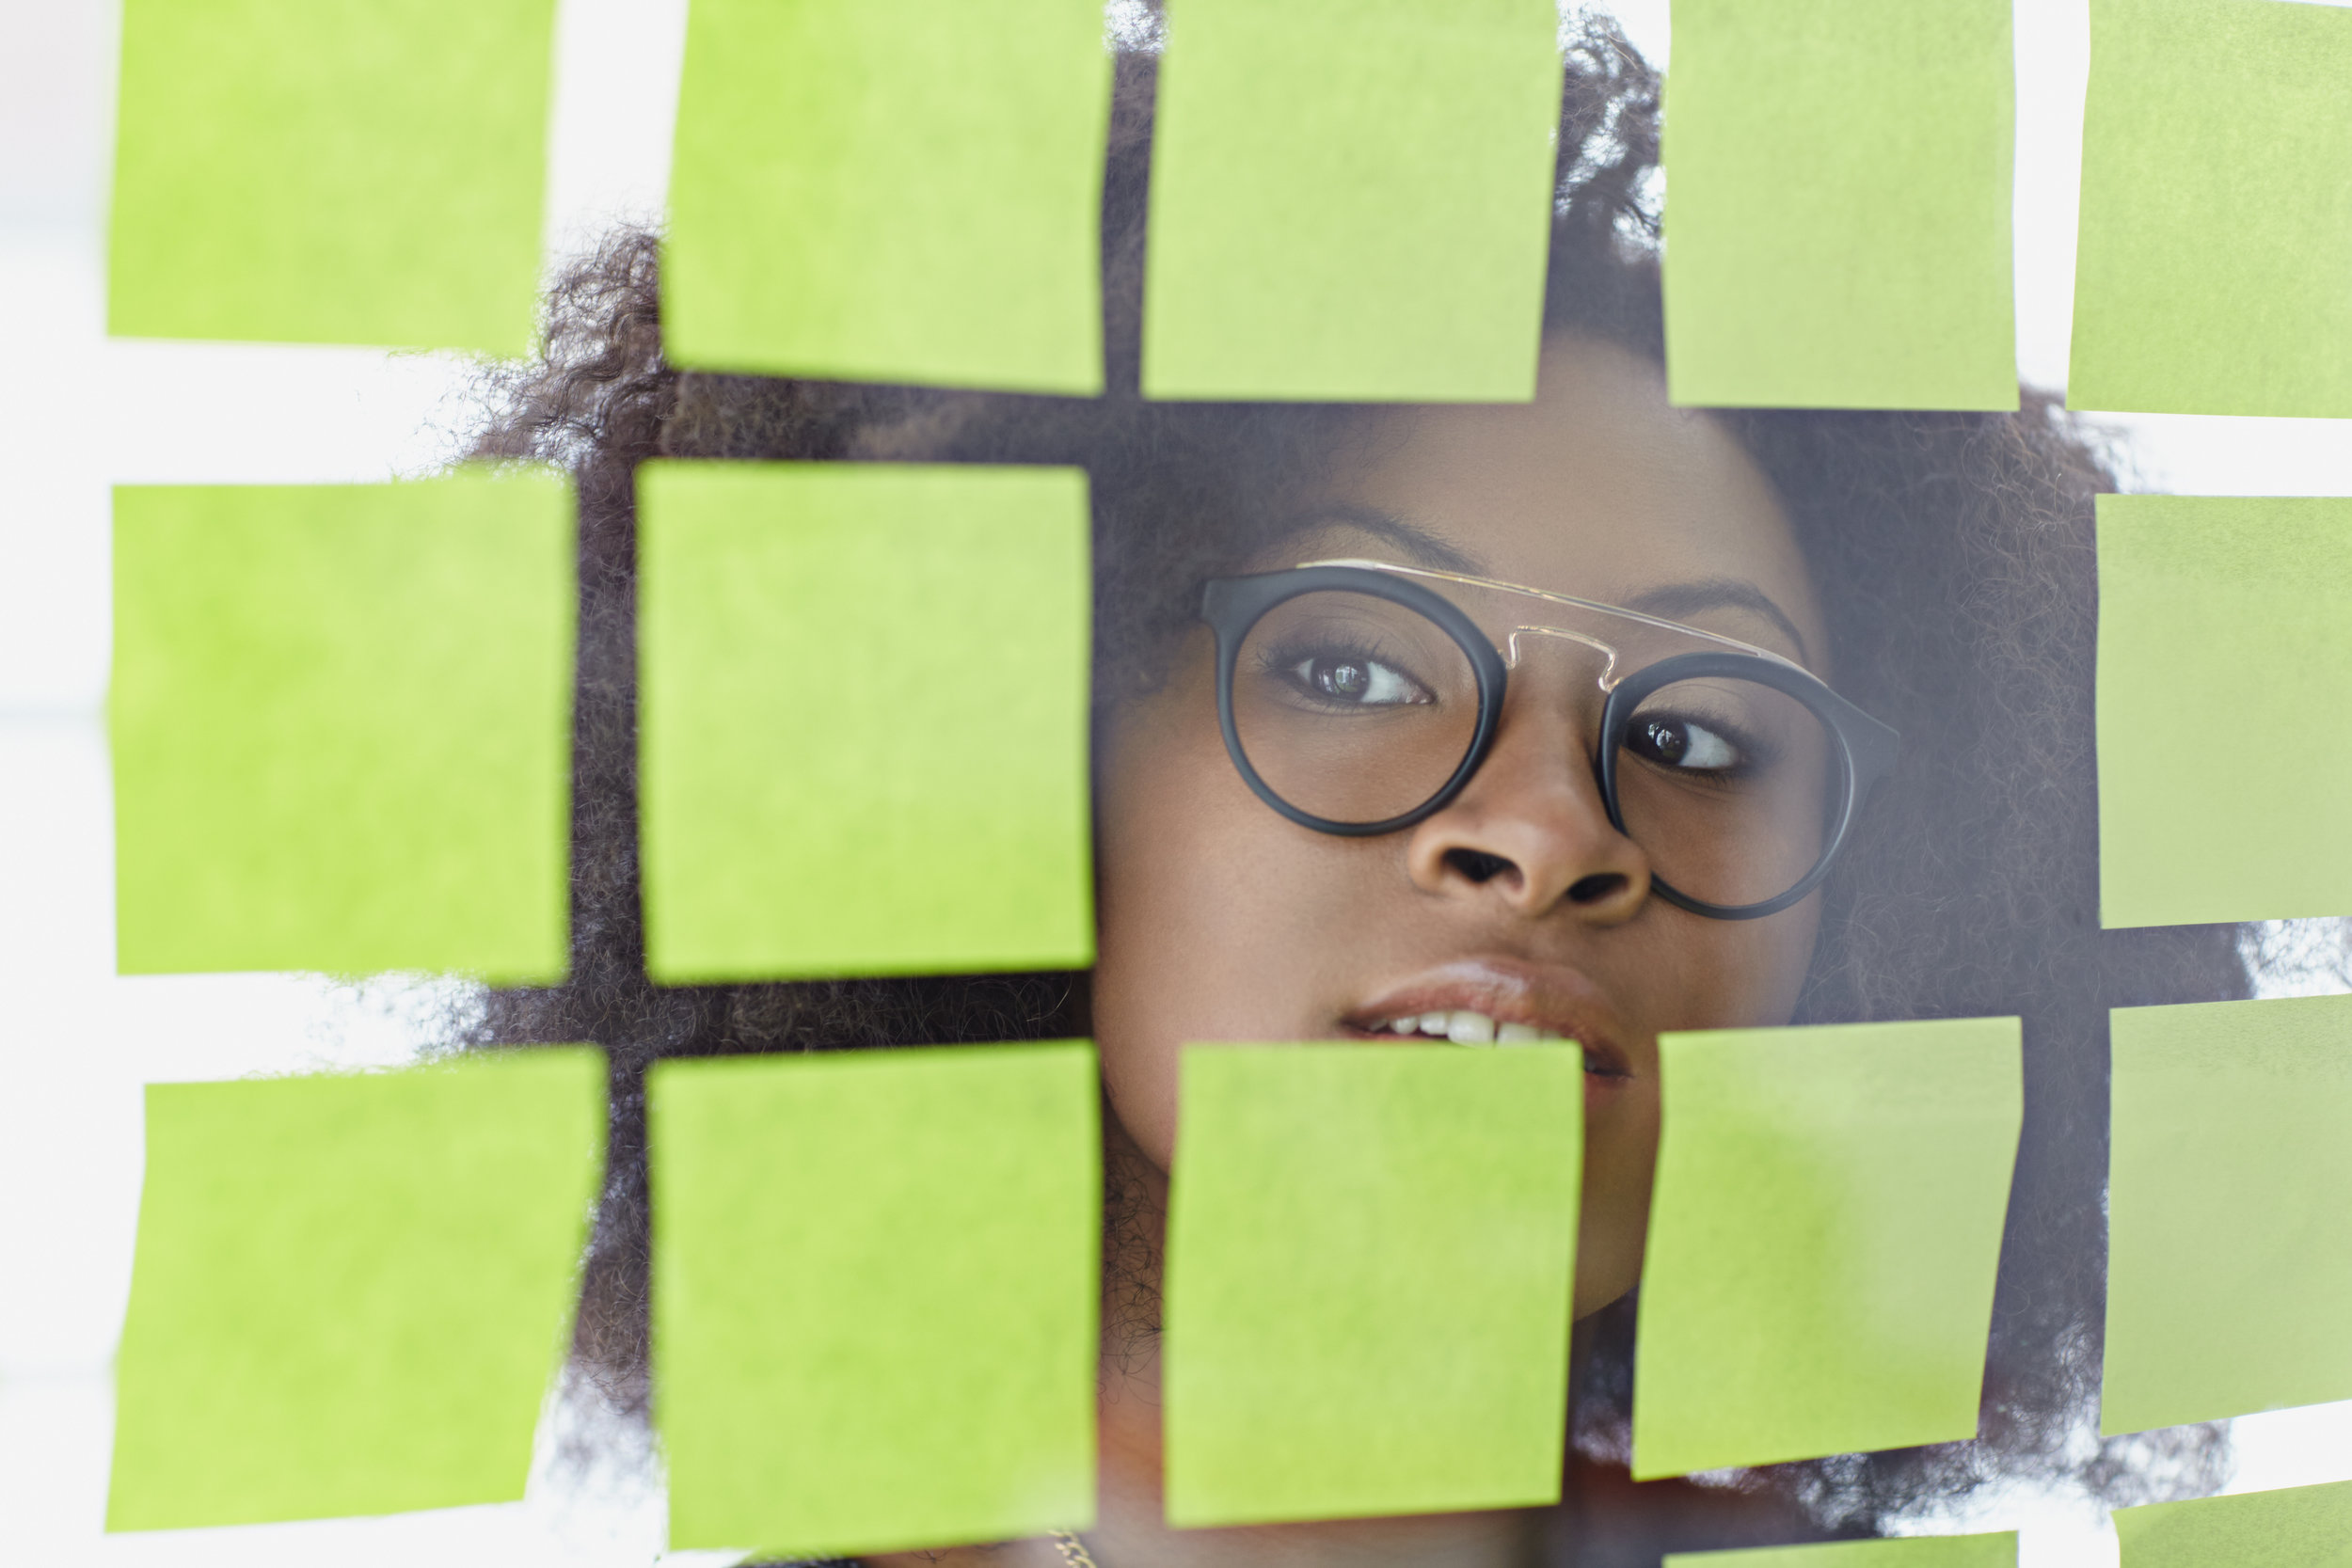 photodune-15095119-portrait-of-a-business-woman-with-an-afro-behind-sticky-notes-in-bright-glass-office-xxl.jpg